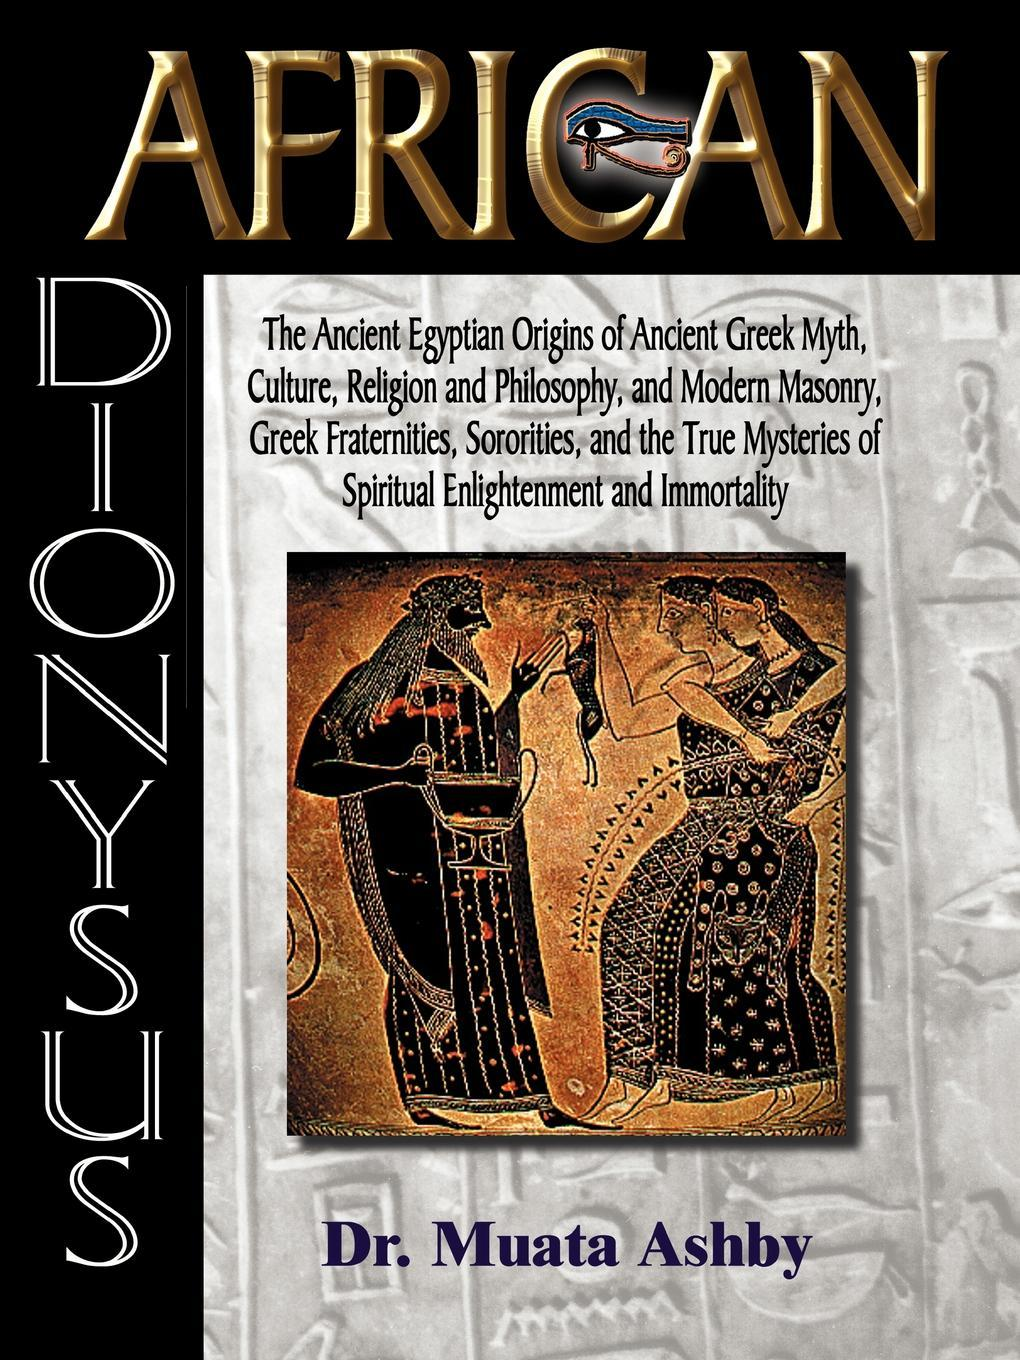 the cultures religion morals and literature of ancient egypt What was the purpose of the construction of egyptian pyramids  the egyptian  religion is described in the vast body of mortuary literature found and  all of that  was part and parcel of the egyptian religion, a polytheistic system,  egyptian  religion may have lasted for 2,700 years because local cultures.